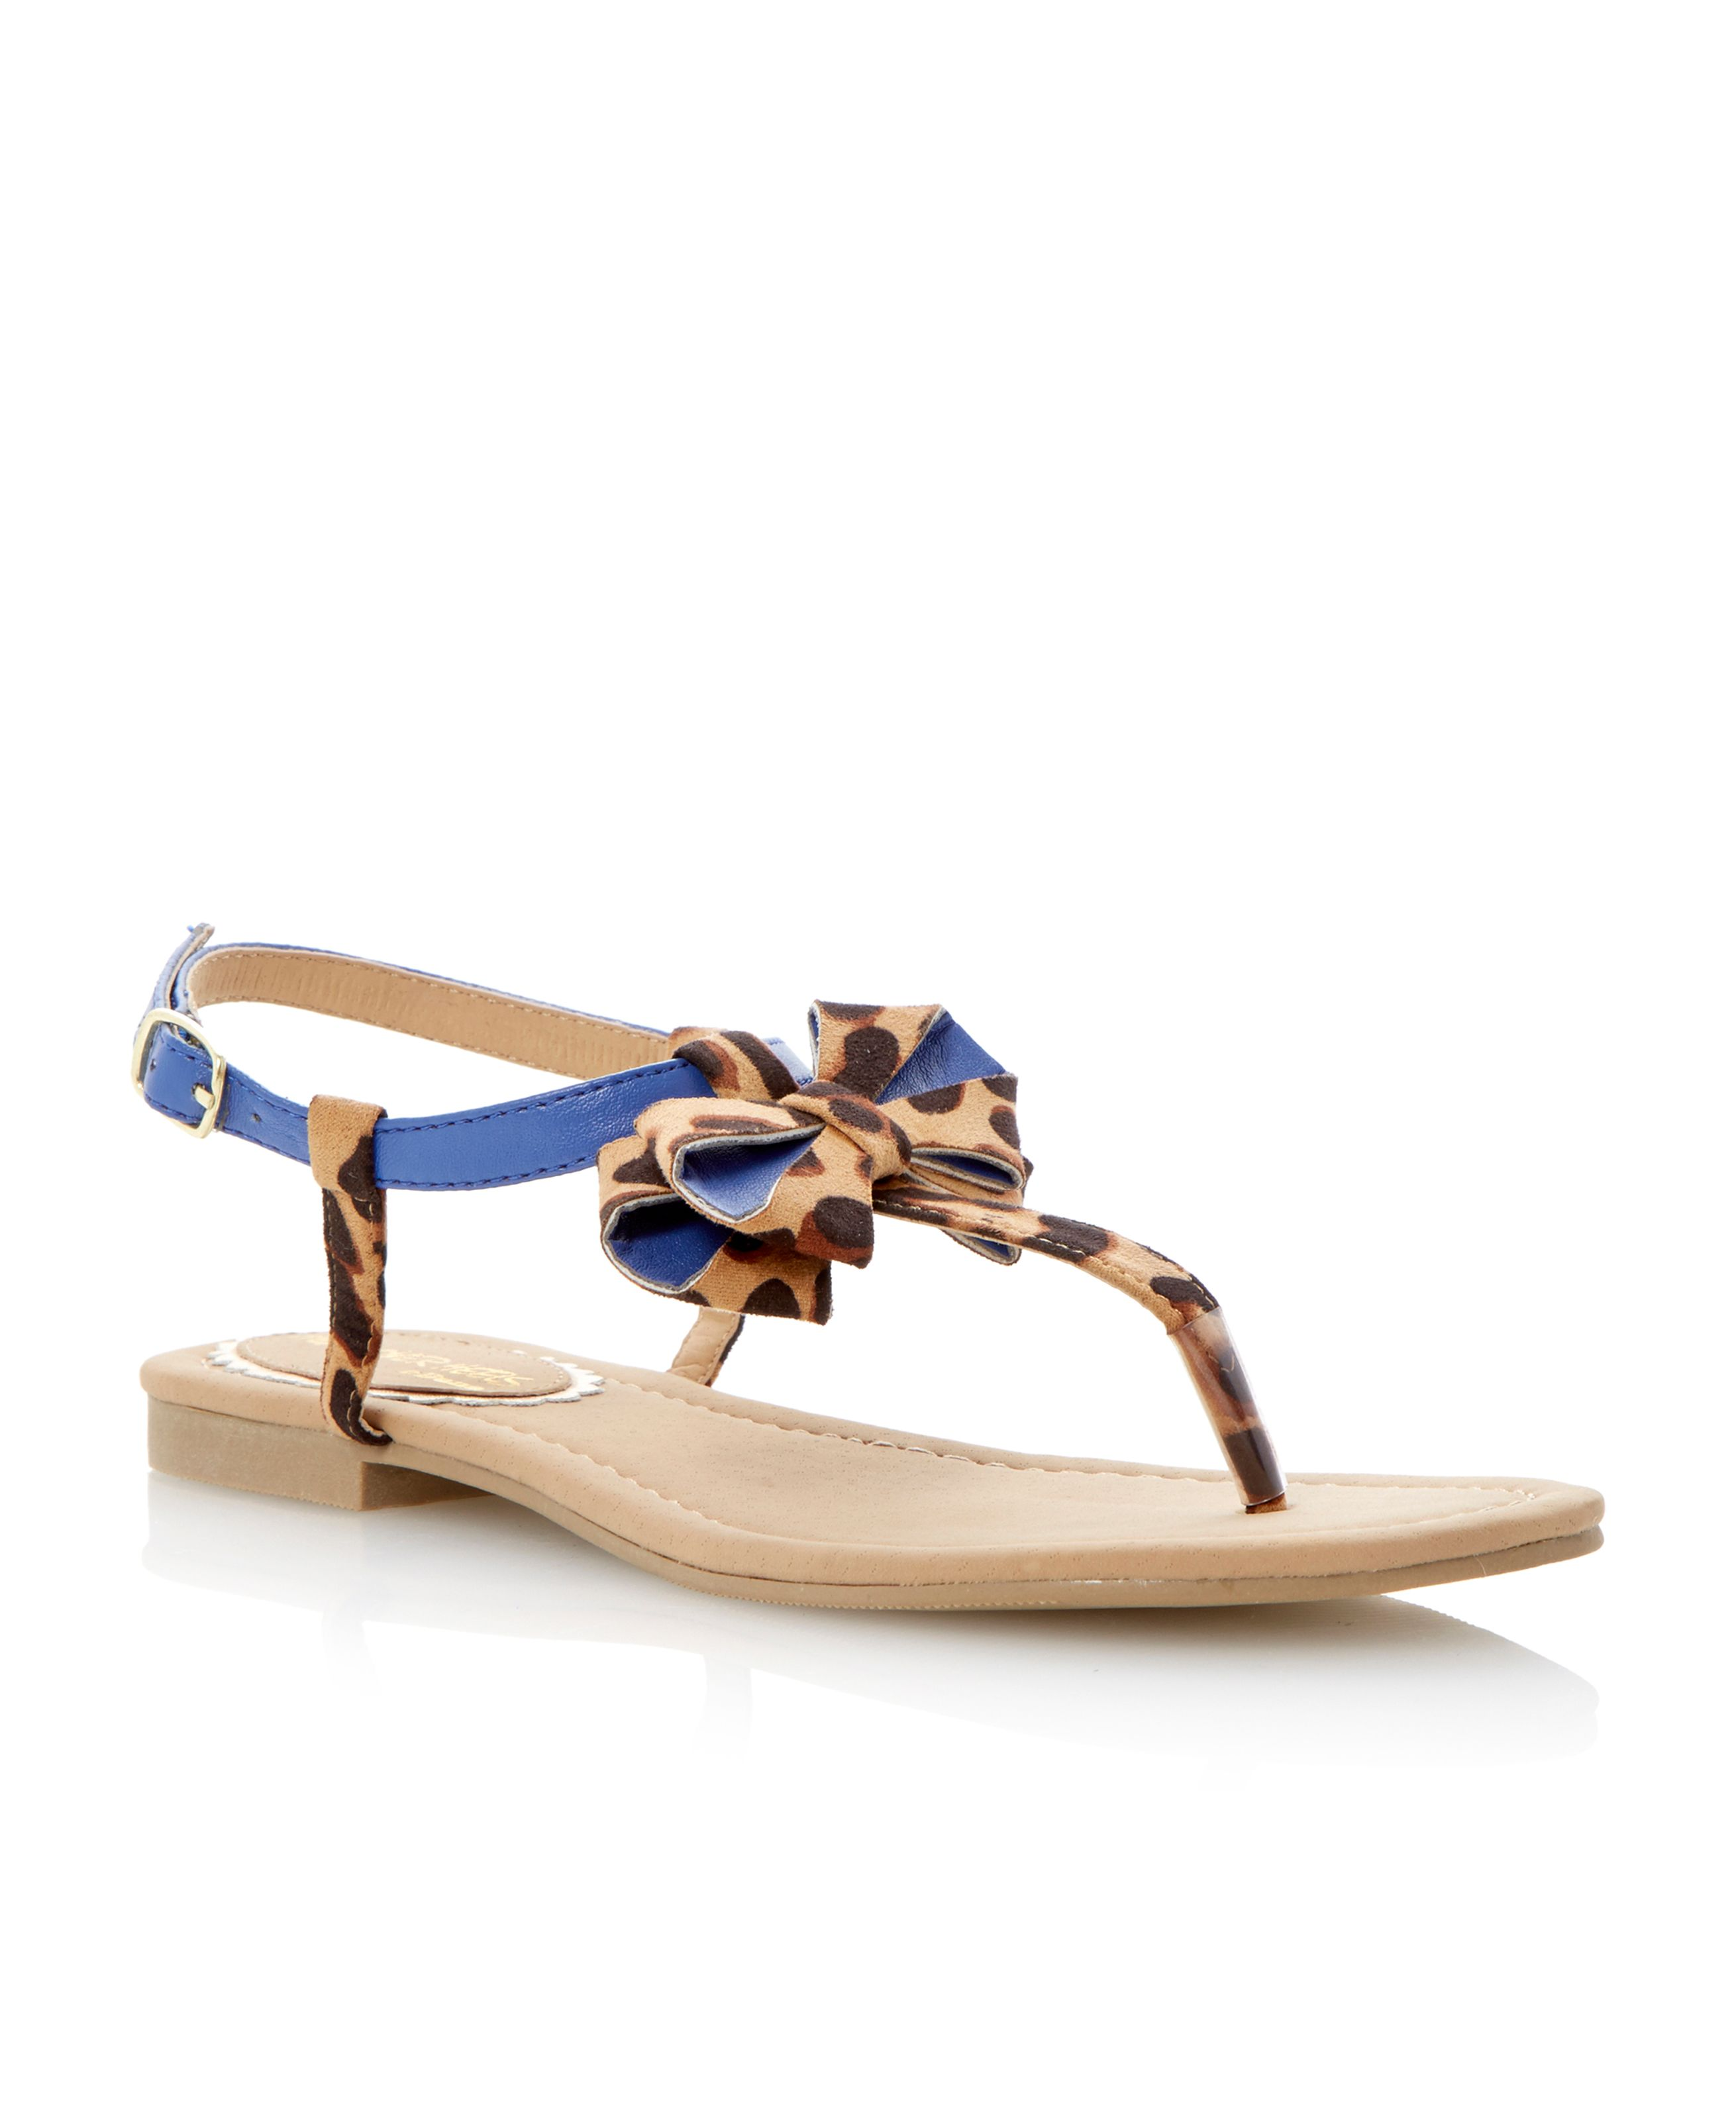 Jillions bow detail flat sandals